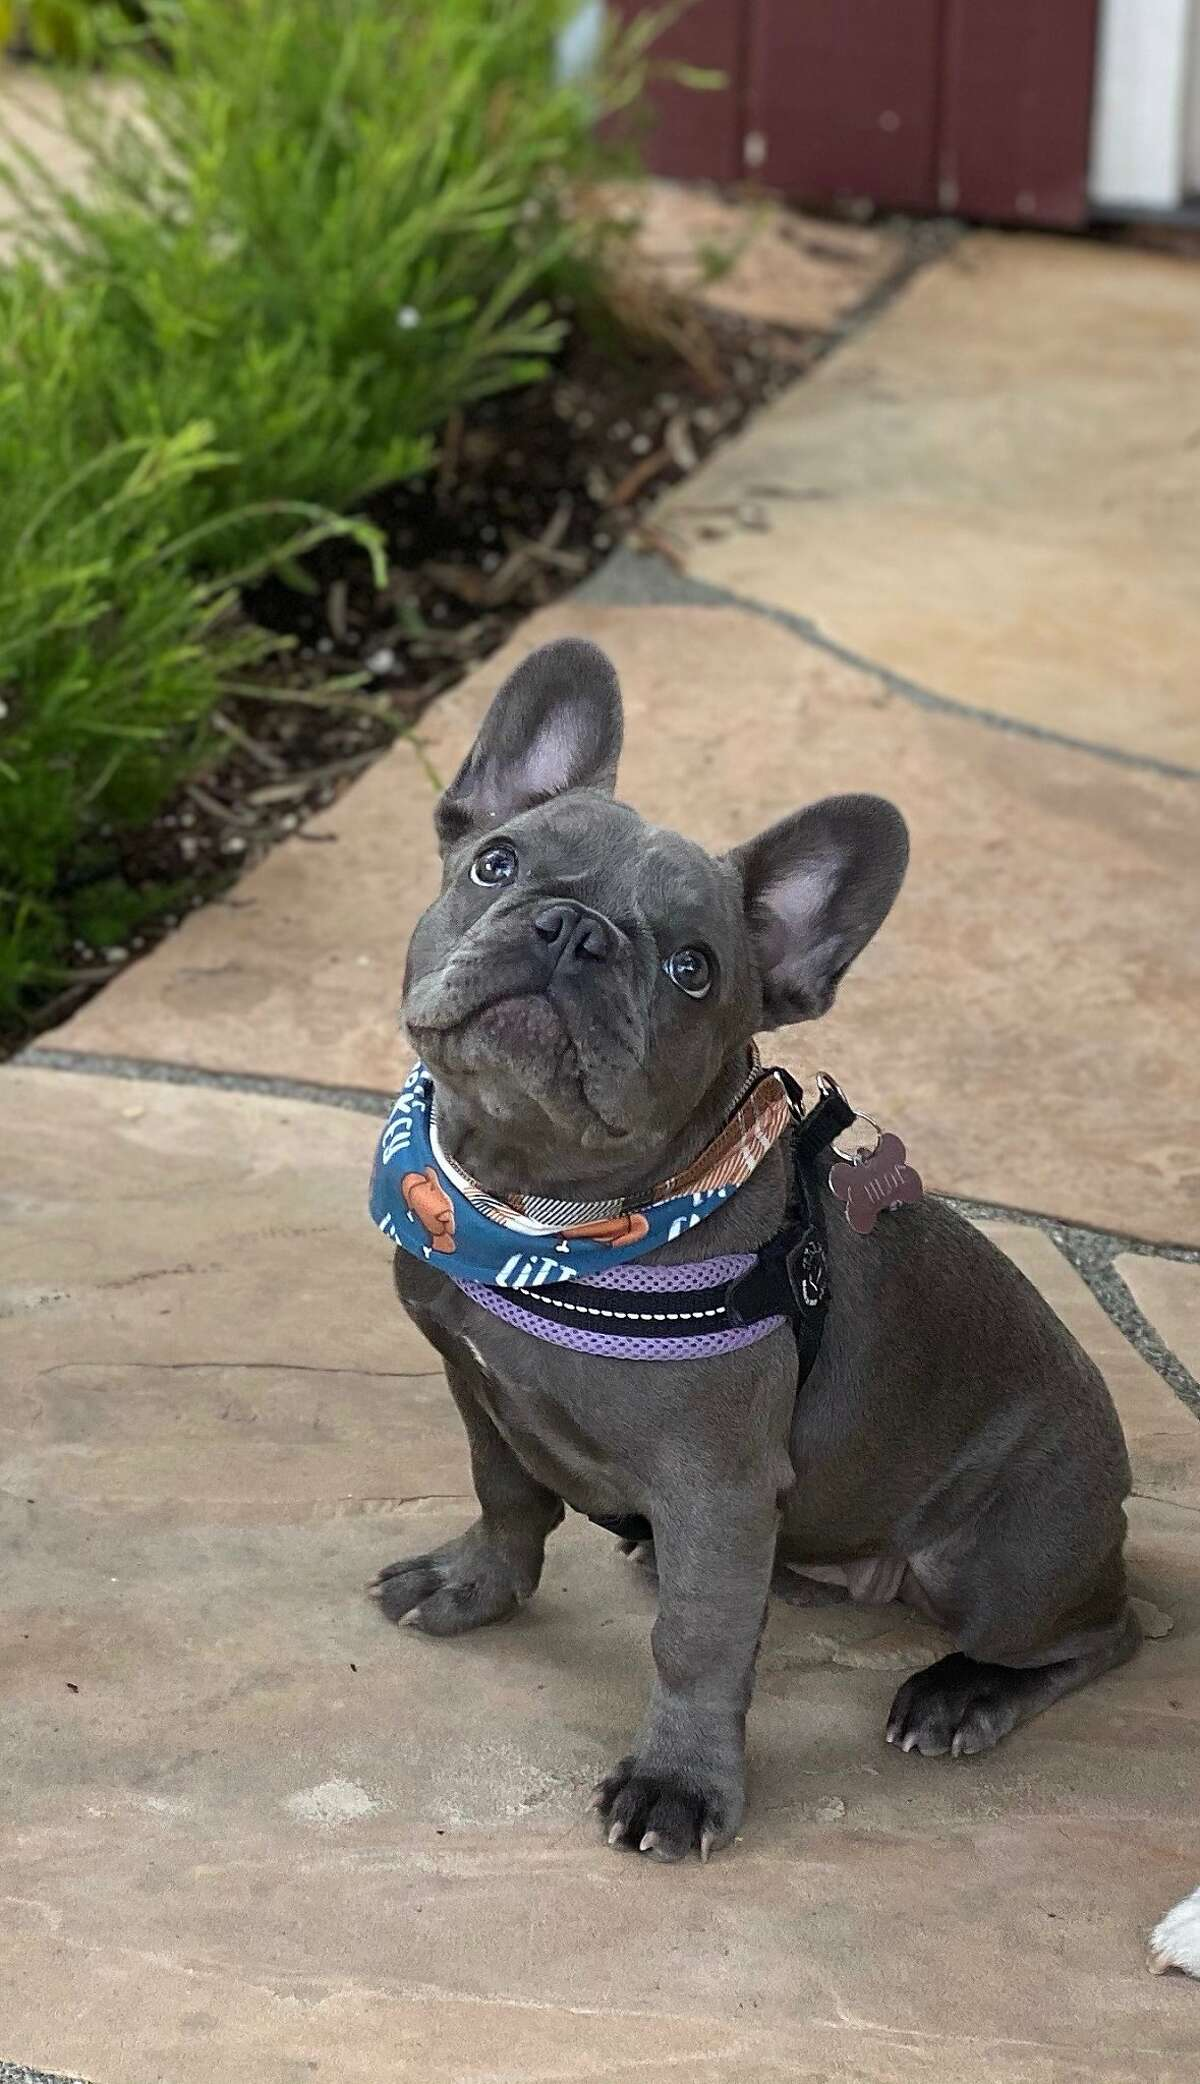 Sarah Vorhaus said her 5-month-old French bulldog was stolen by three men who assaulted her at gunpoint Tuesday night while she was walking her dogs in the Russian Hill neighborhood of San Francisco.